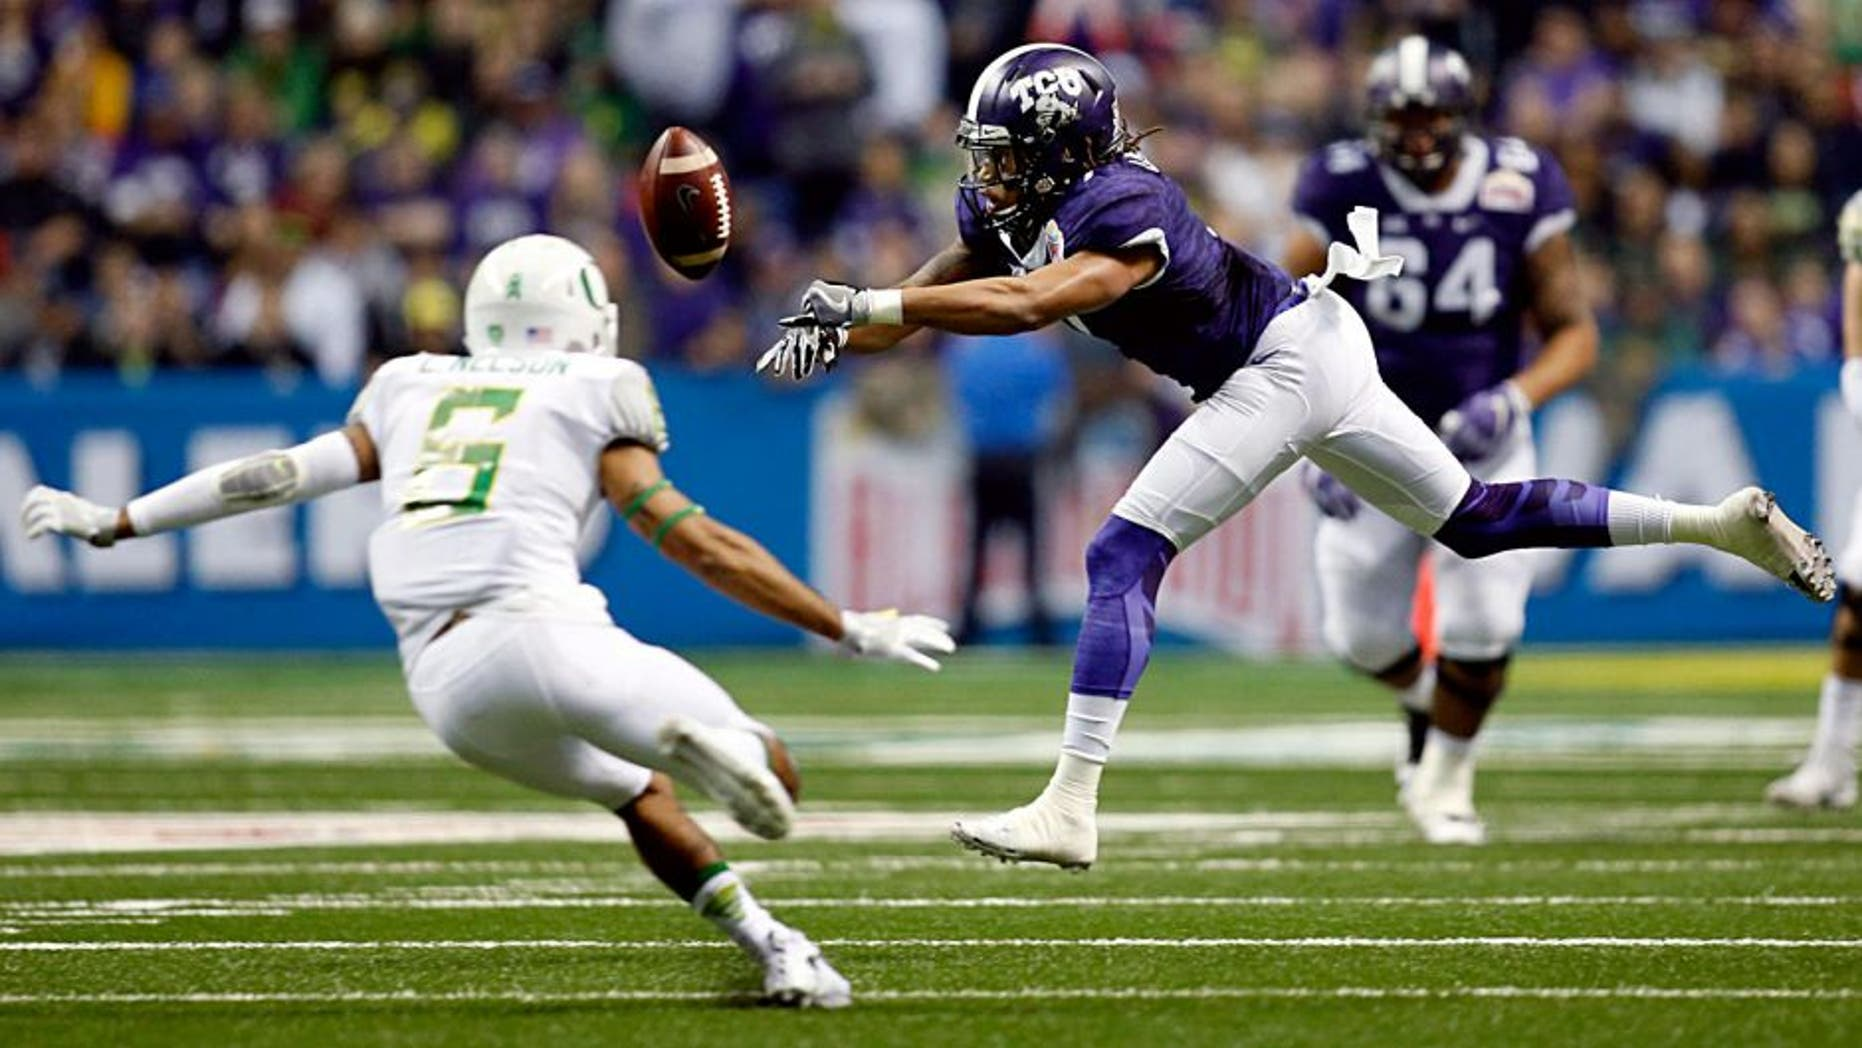 Jan 2, 2016; San Antonio, TX, USA; TCU Horned Frogs wide receiver Kolby Listenbee (7) misses a catch as Oregon Ducks safety Charles Nelson (6) defends in the 2016 Alamo Bowl at the Alamodome. Mandatory Credit: Erich Schlegel-USA TODAY Sports